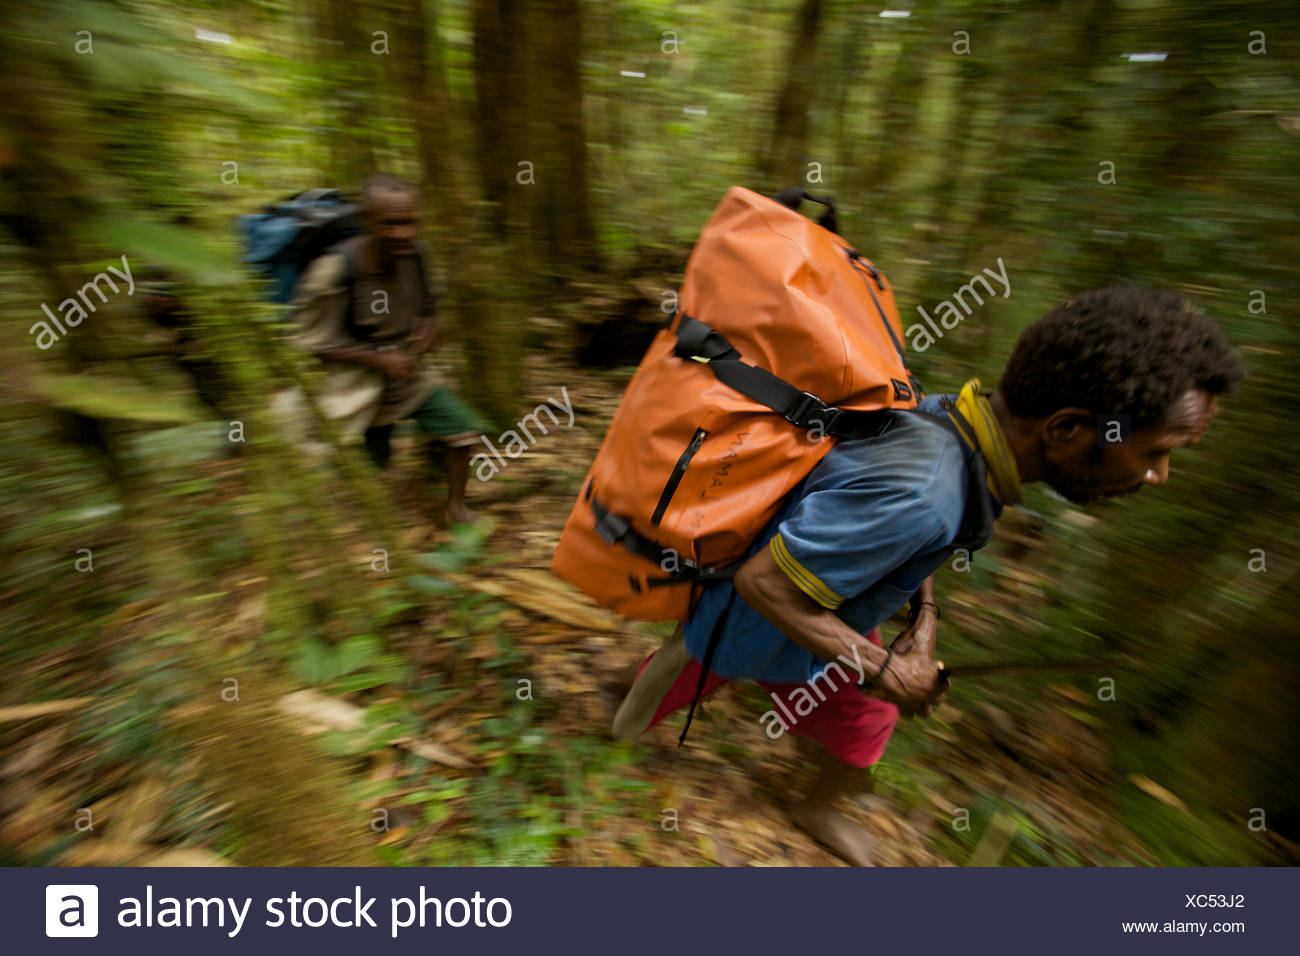 Local porters carry expedition gear to camp in the Arfak Mountains. - Stock Image